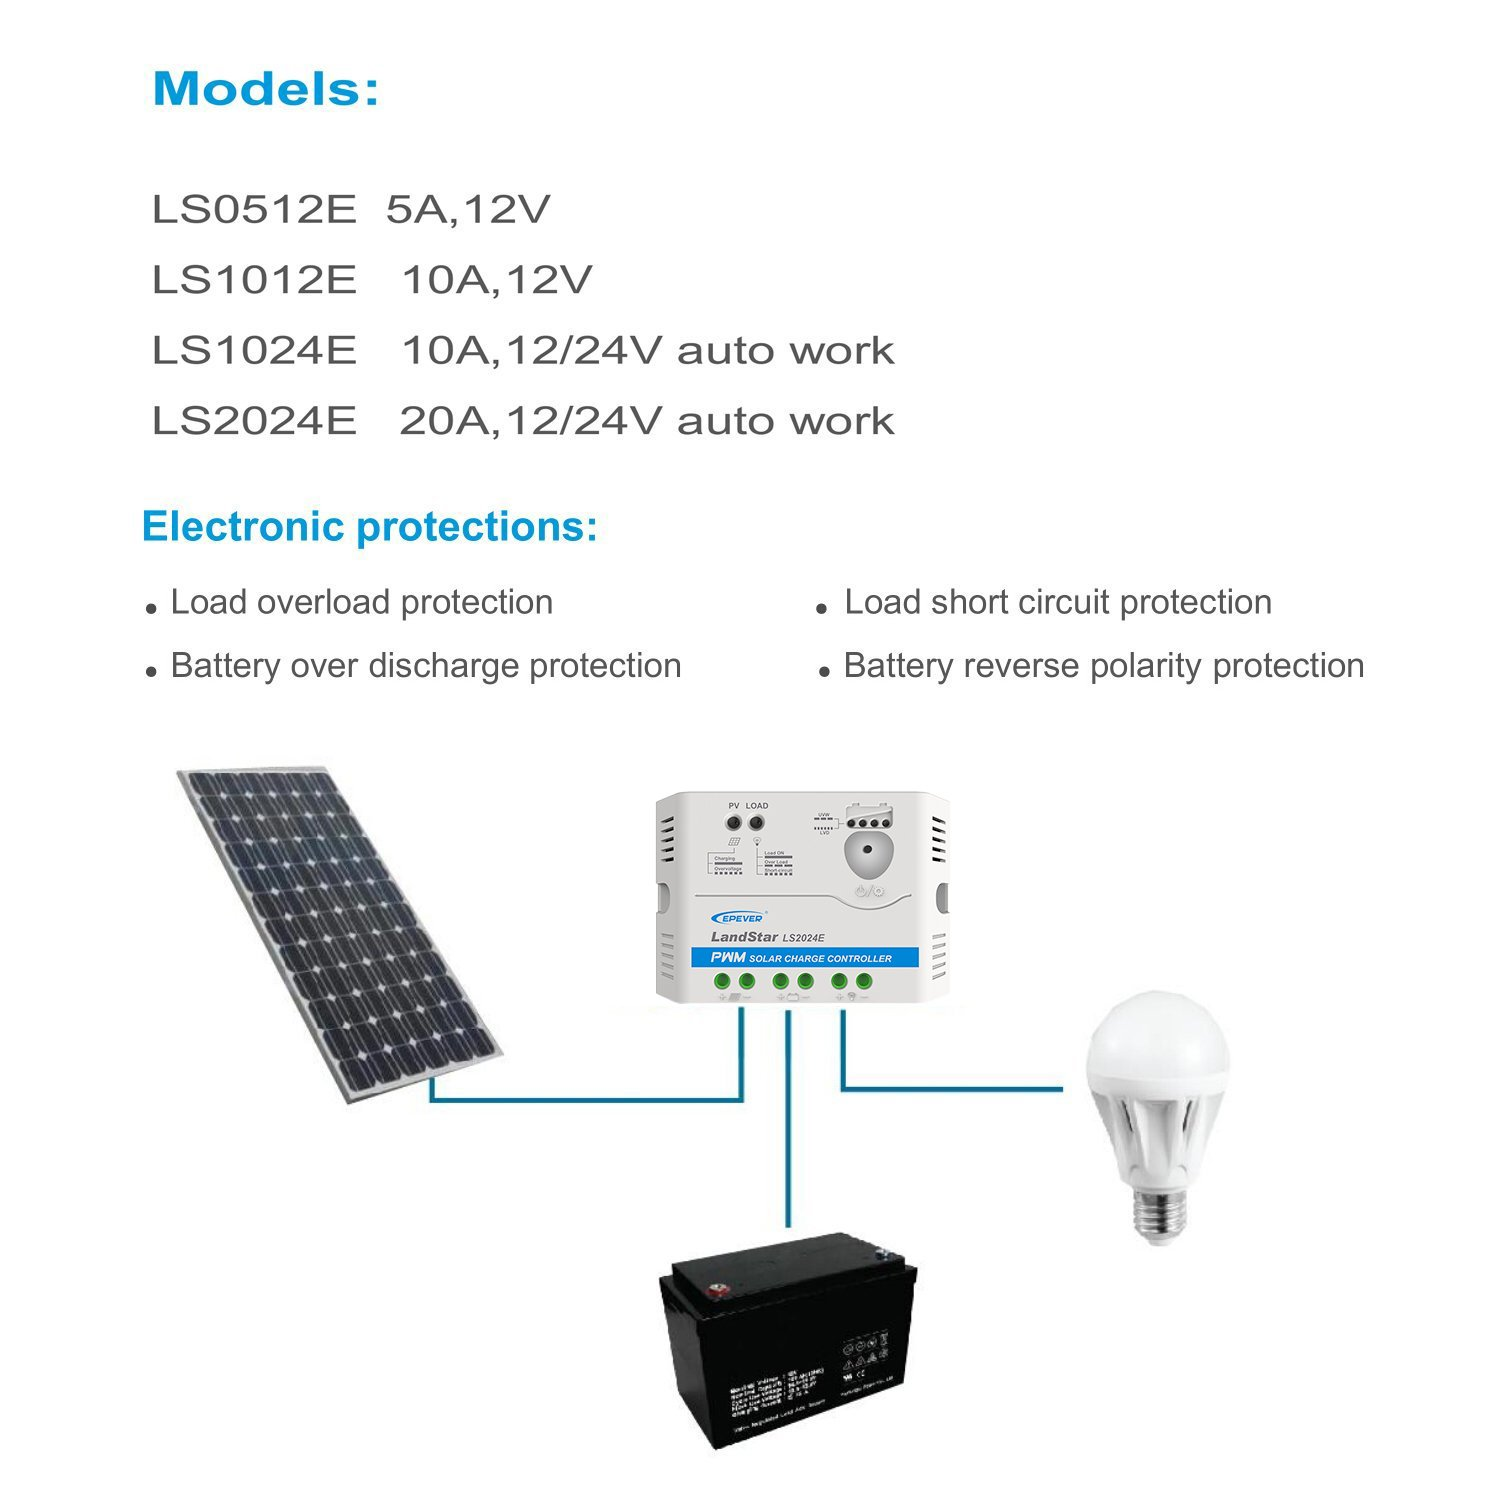 Epever Solar Charge Controller 20a 12v 24v Auto Work Pwm Dc Voltage Regulator Circuit Smart 30a Ls2024e Panel Battery Charging Led Indicator For Off Grid Home System